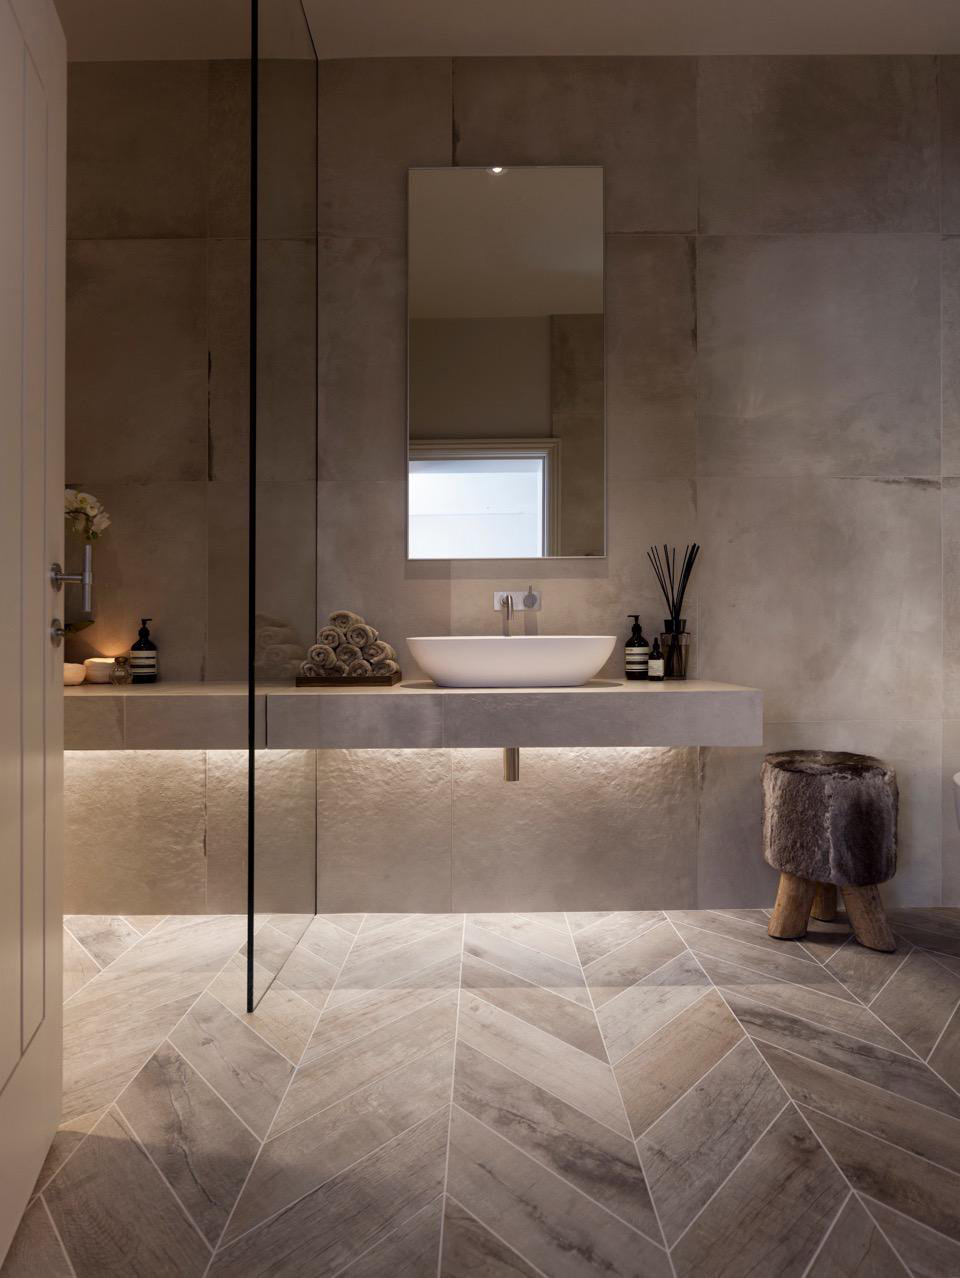 Pin by llama group janey butler on llama janey butler interiors herringbone wood effect floor tiles floating shelf and glass detail ceramic concrete effect wall tiles janey butler interiors dailygadgetfo Image collections